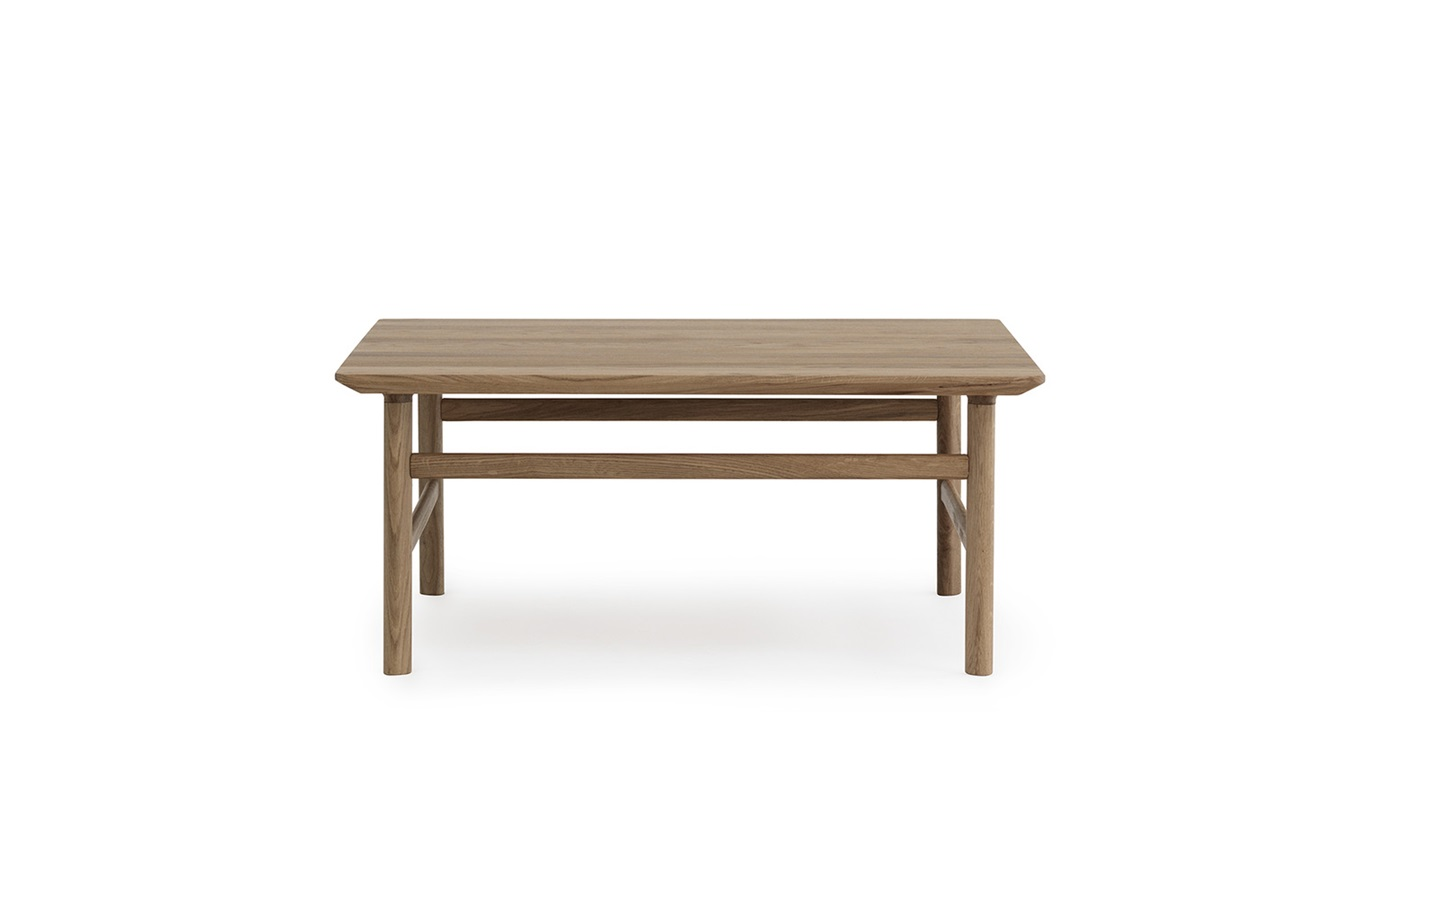 Grow in solid oak a coffee table in classic danish design for Coffee table 80 x 80